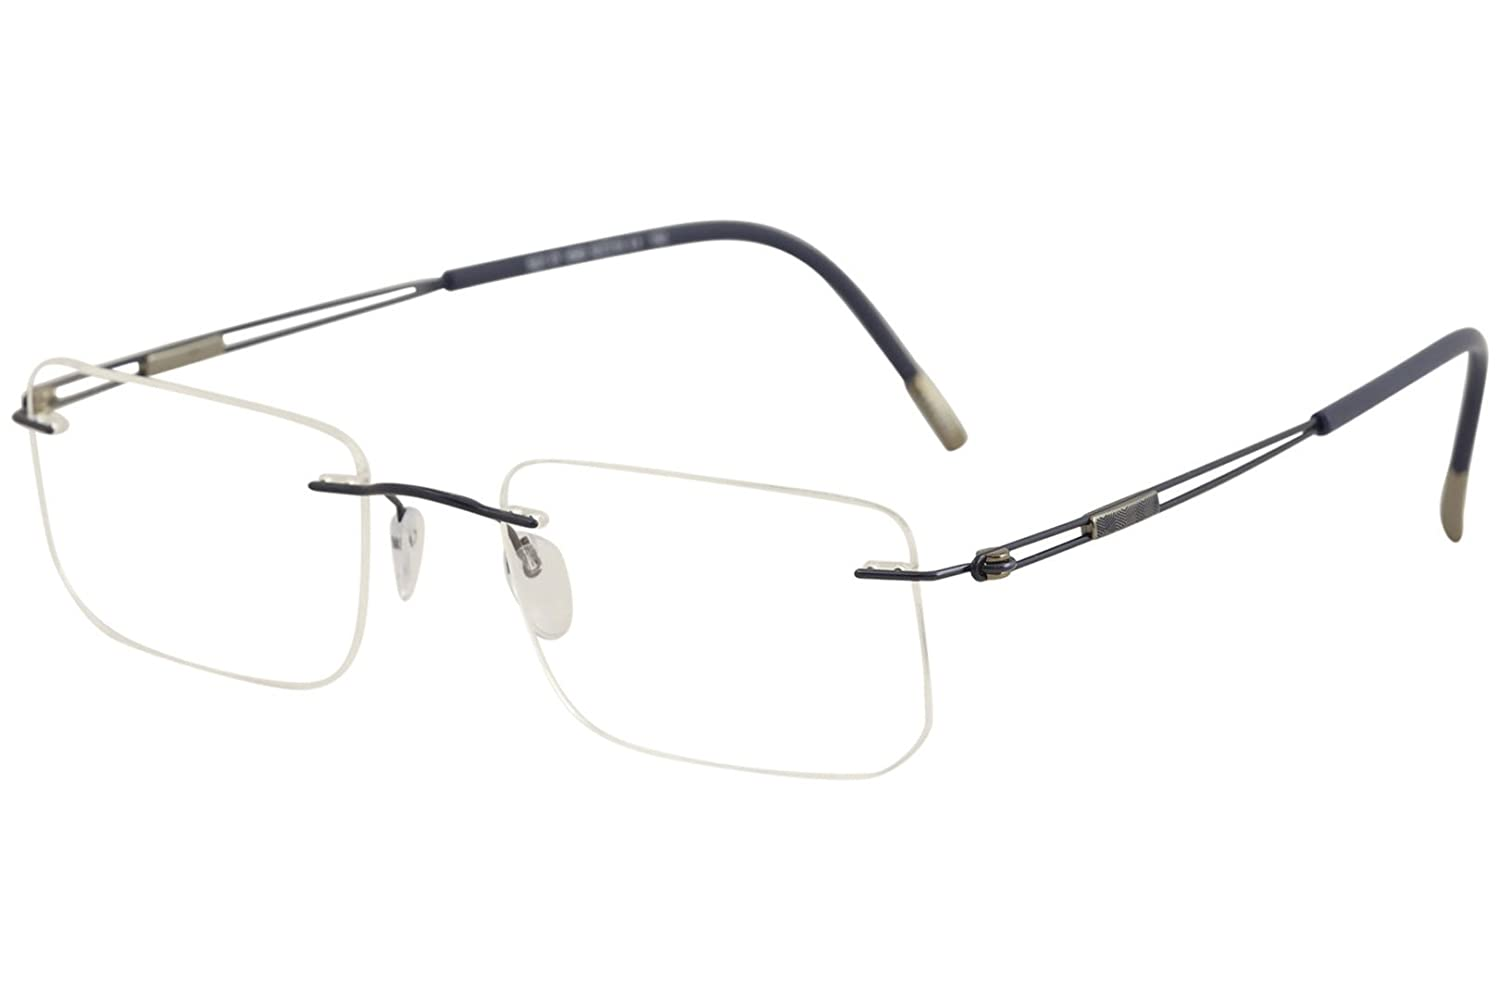 8302522b8c6 Silhouette Rimless Tma Must 7799 Chassis Eyeglasses « One More Soul